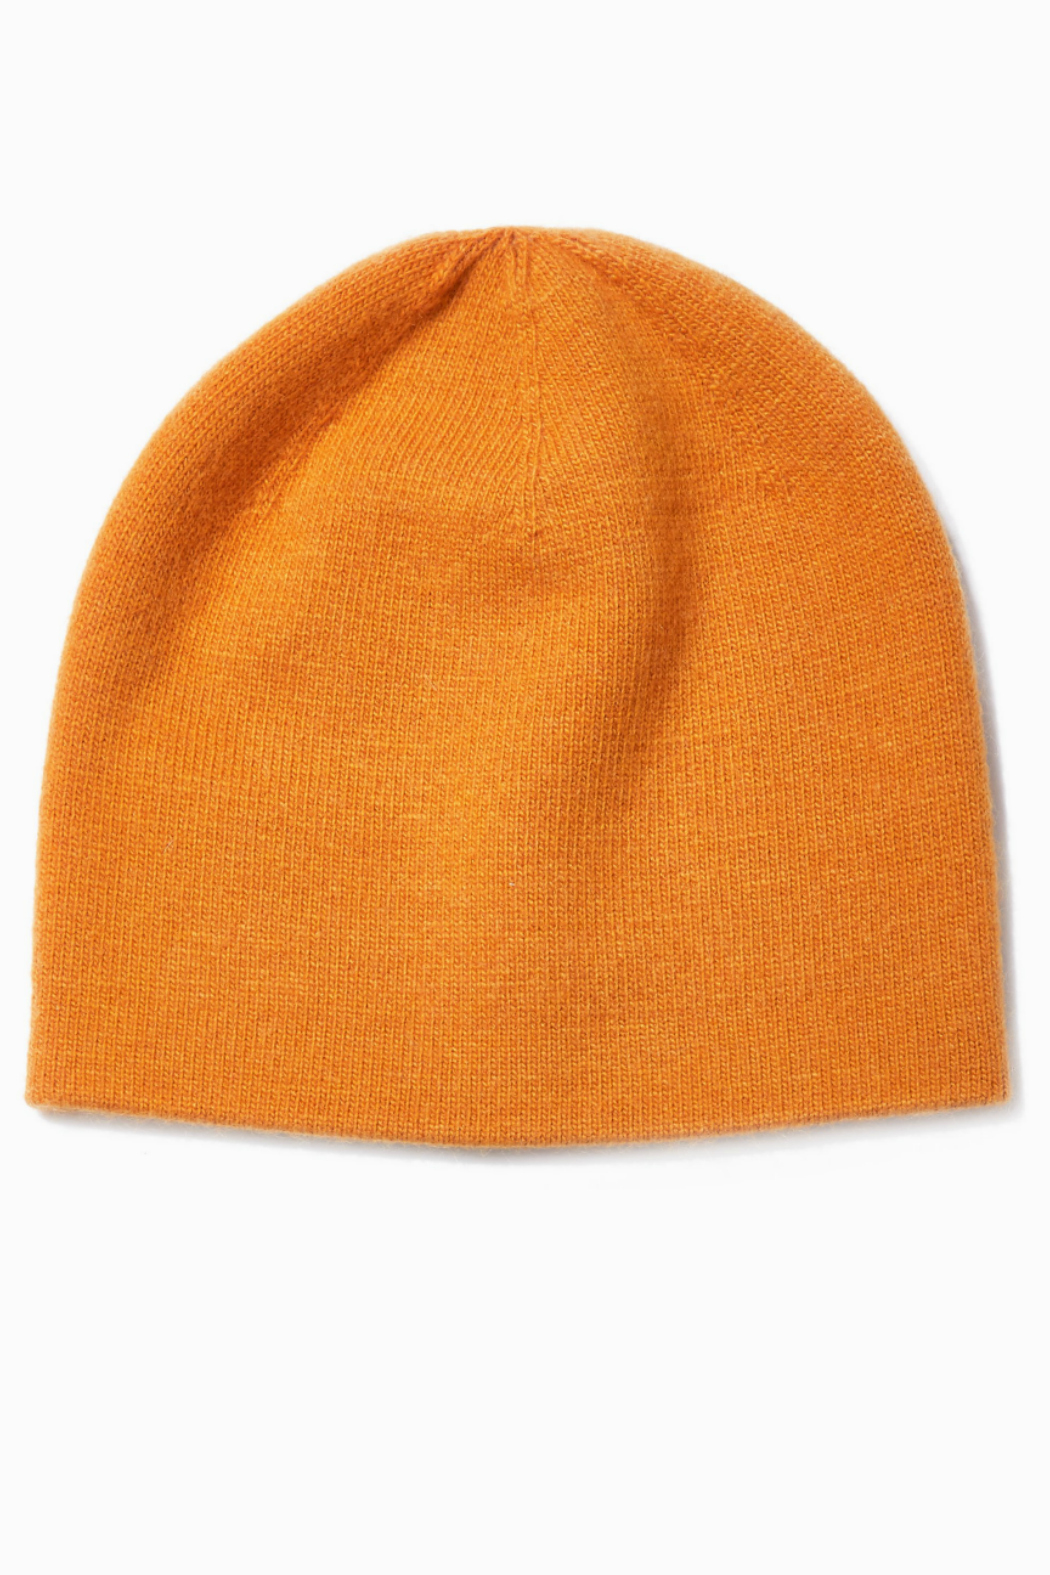 Look by M Cashmere Blended Basic Beanie - Front Cropped Image